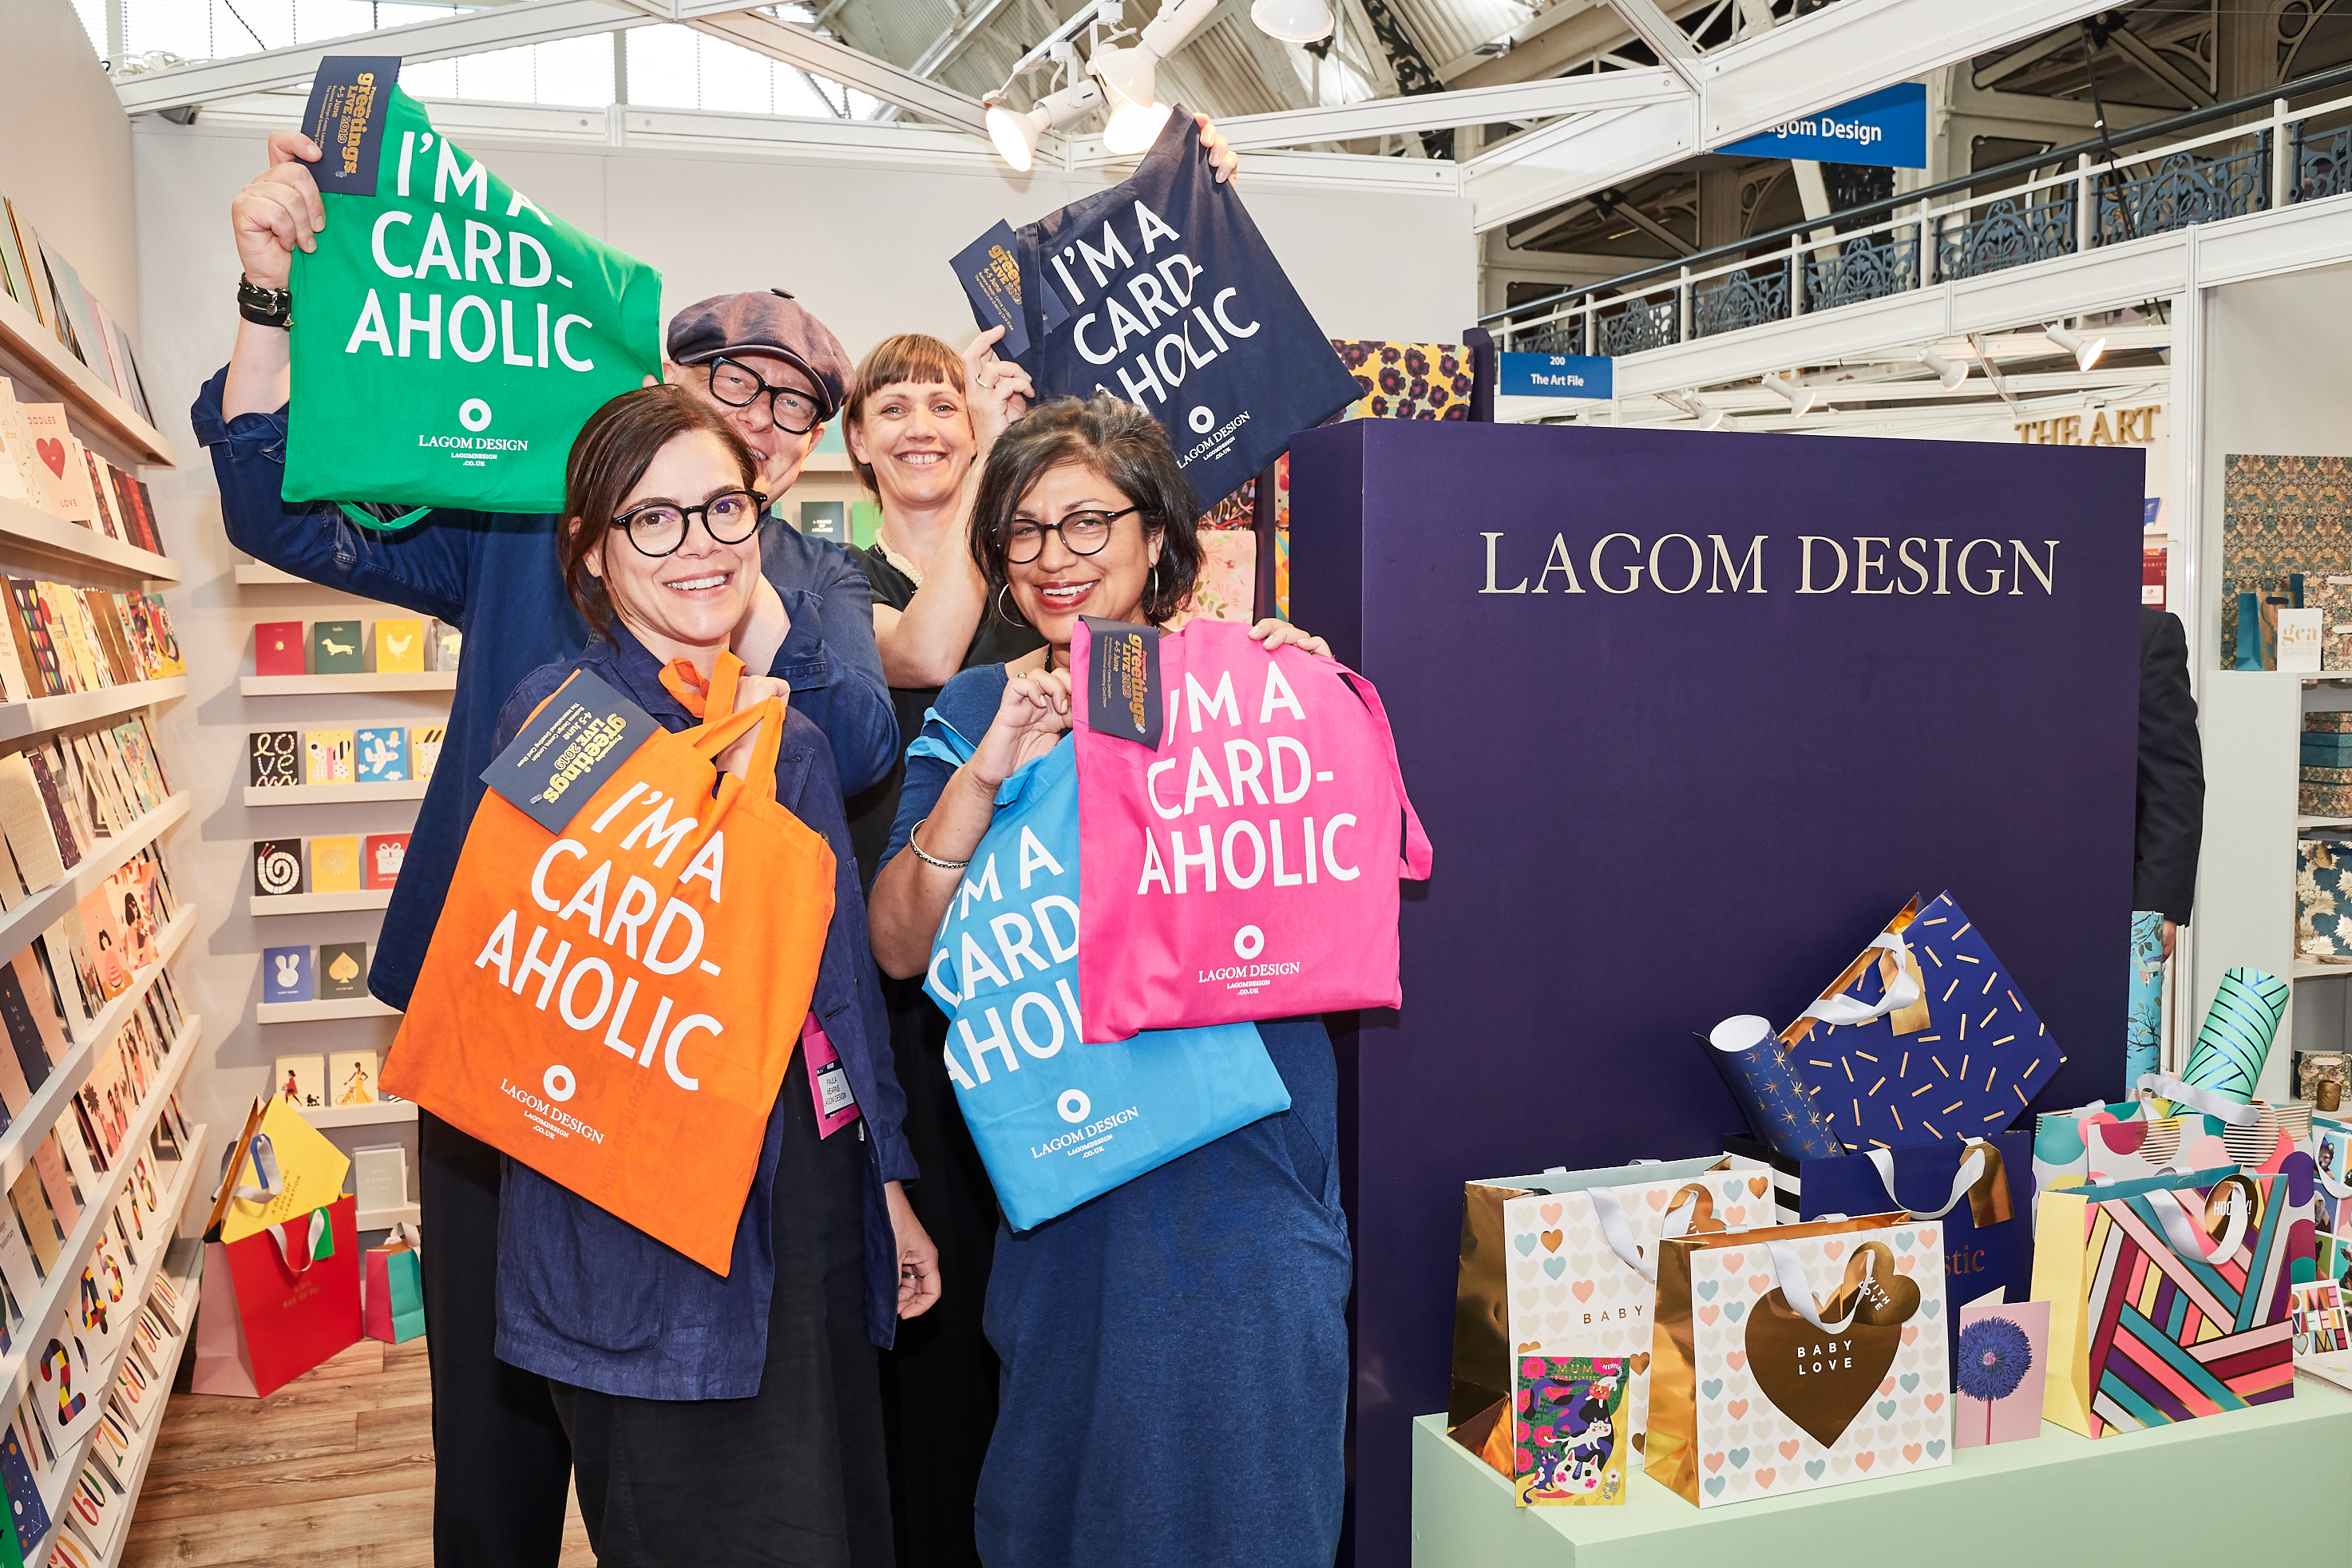 Above: The Lagom Design team with the PG Live keepsake 'I'm a card-aholic' tote bag that everyone received.